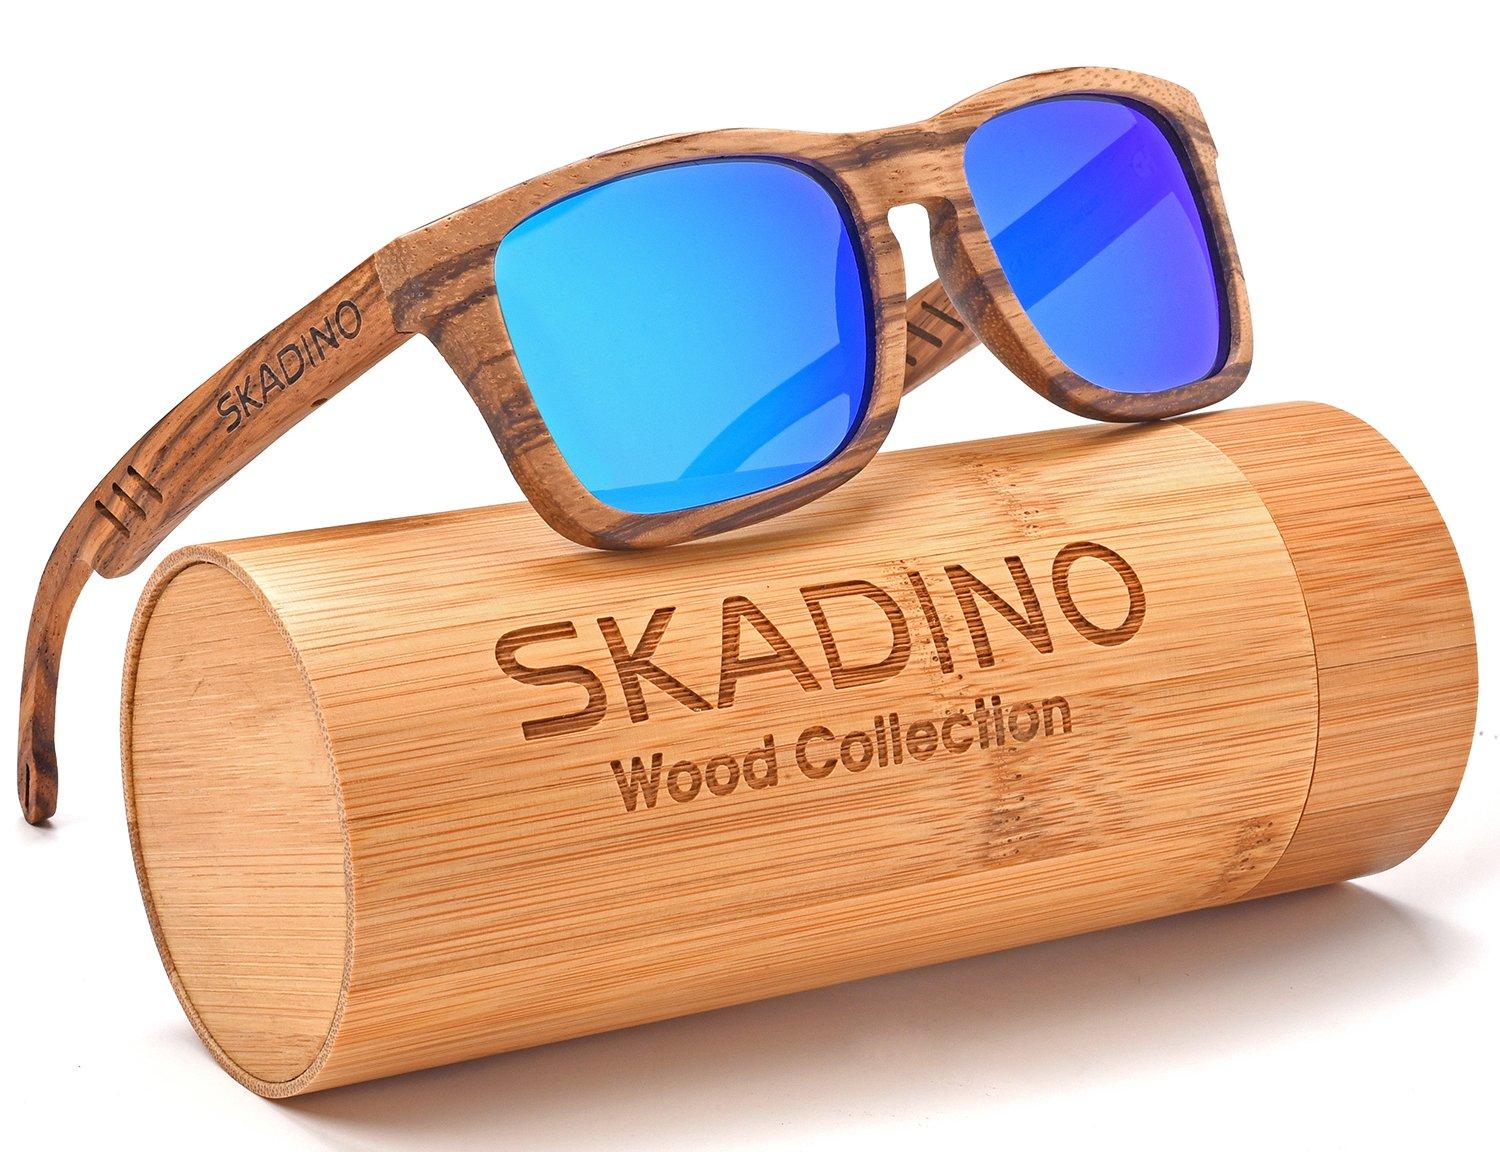 SKADINO Wood Sunglasses for Women&Men with Polarized lenses-Handmade Floating Wood Shade-Zebra Wood S1057C04